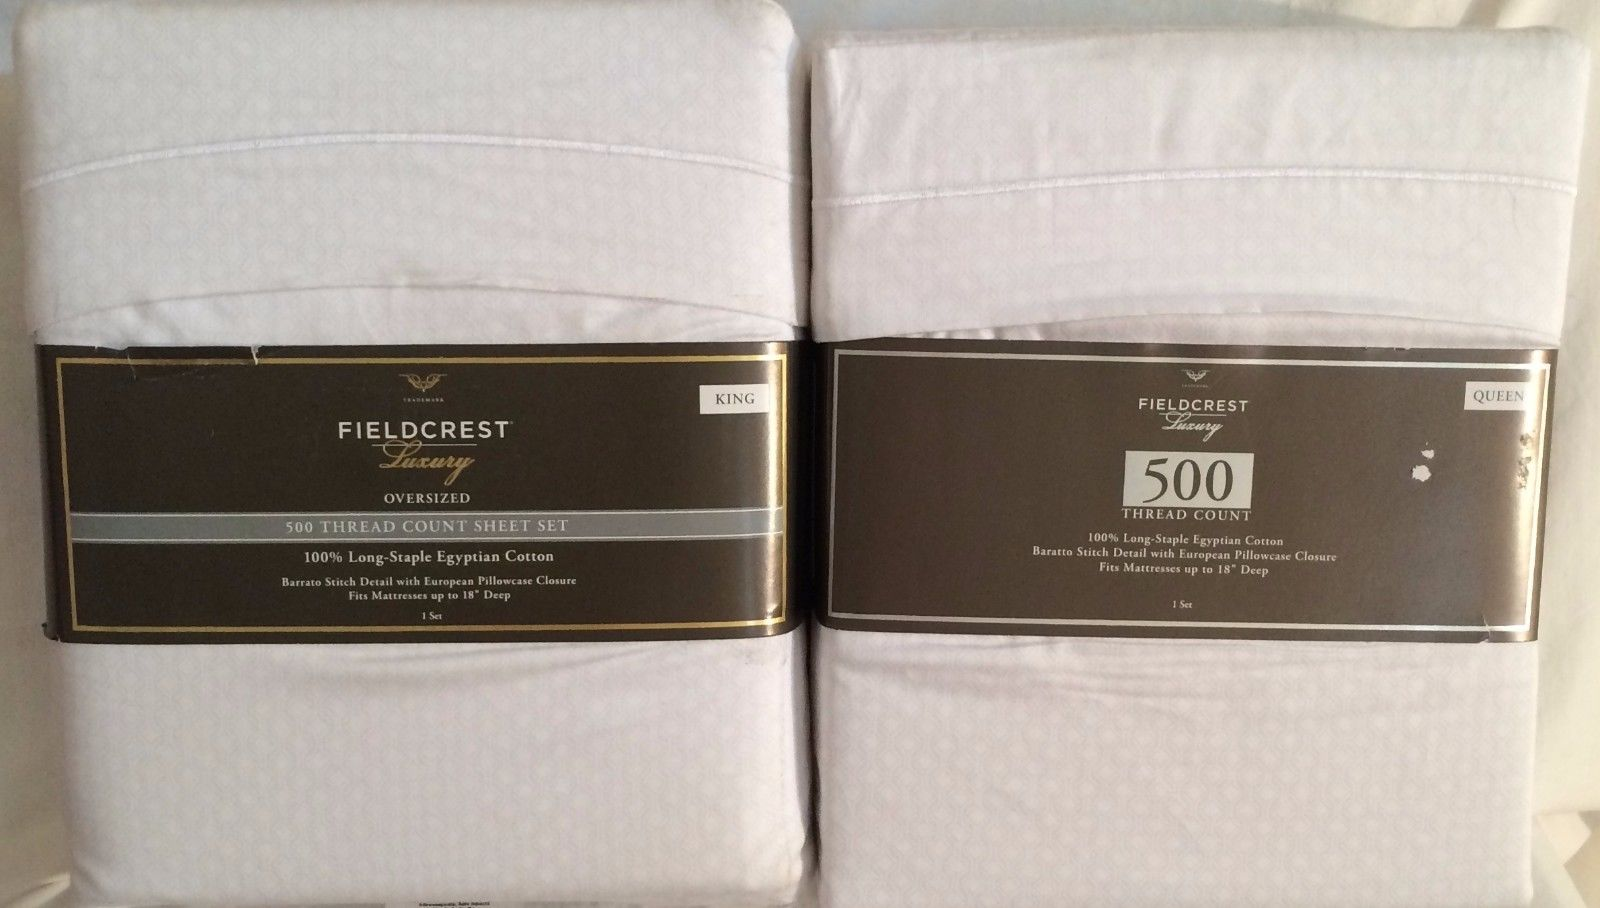 Fieldcrest Rn17730 | Fieldcrest Luxury Sheets | Fieldcrest Luxury Matelasse Blanket